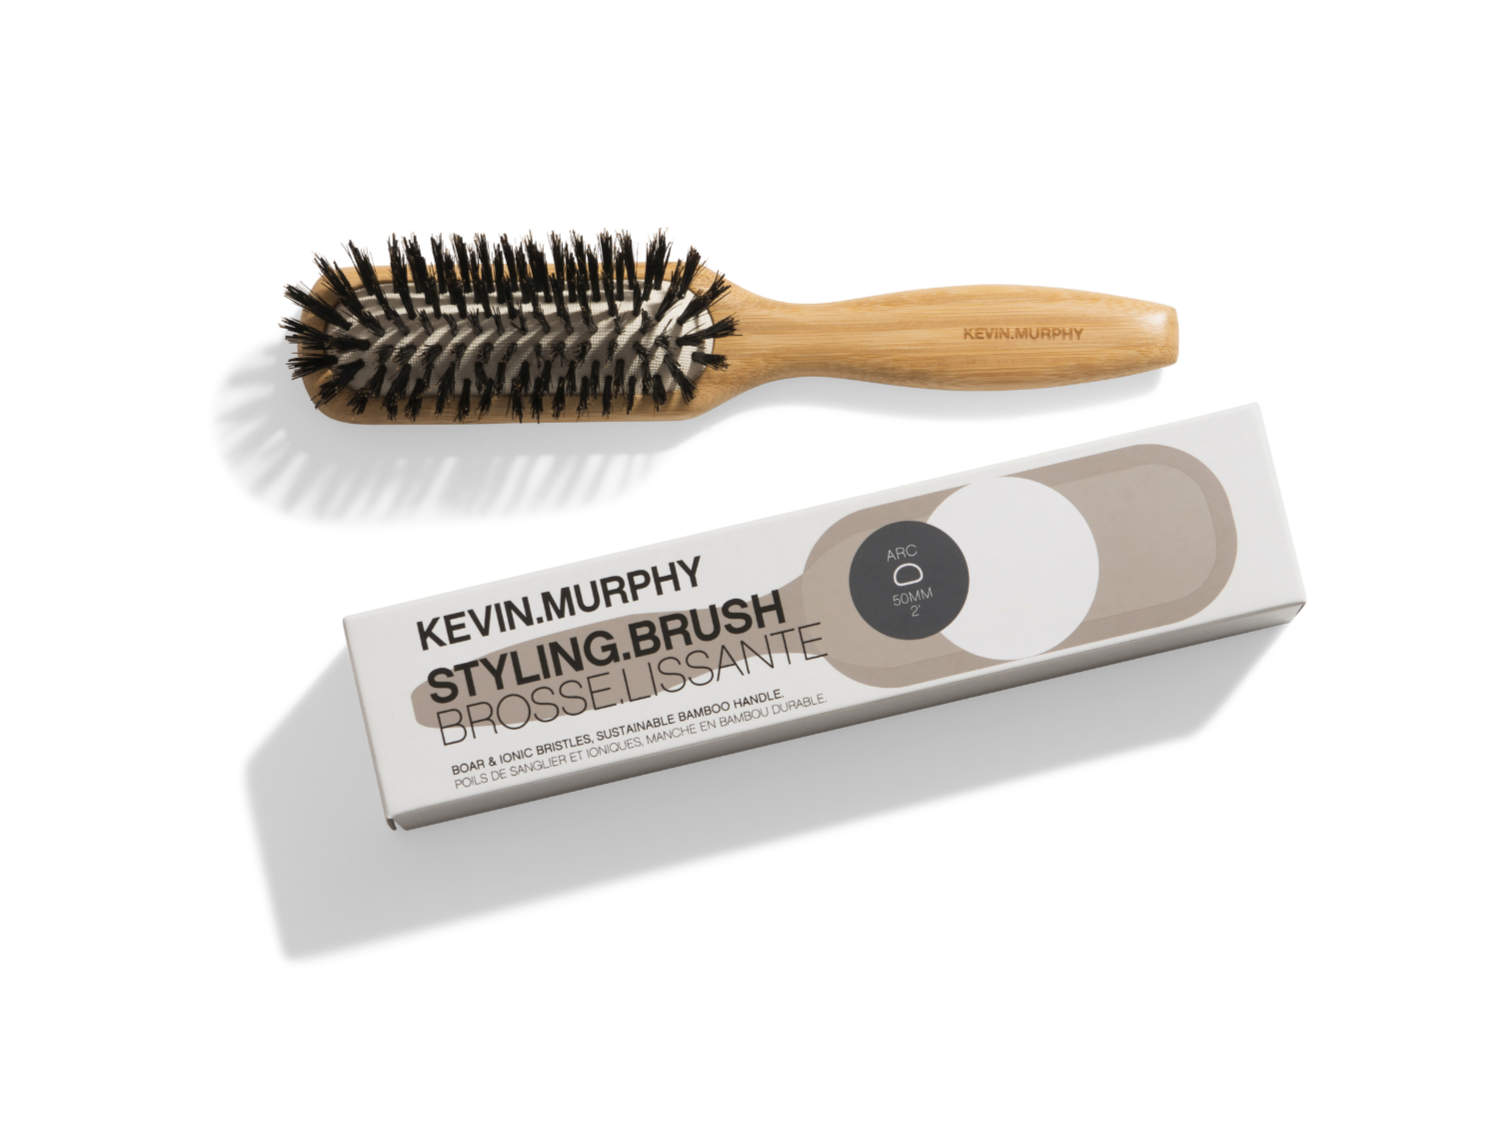 Arma Beauty - Kevin Murphy - STYLING.BRUSH